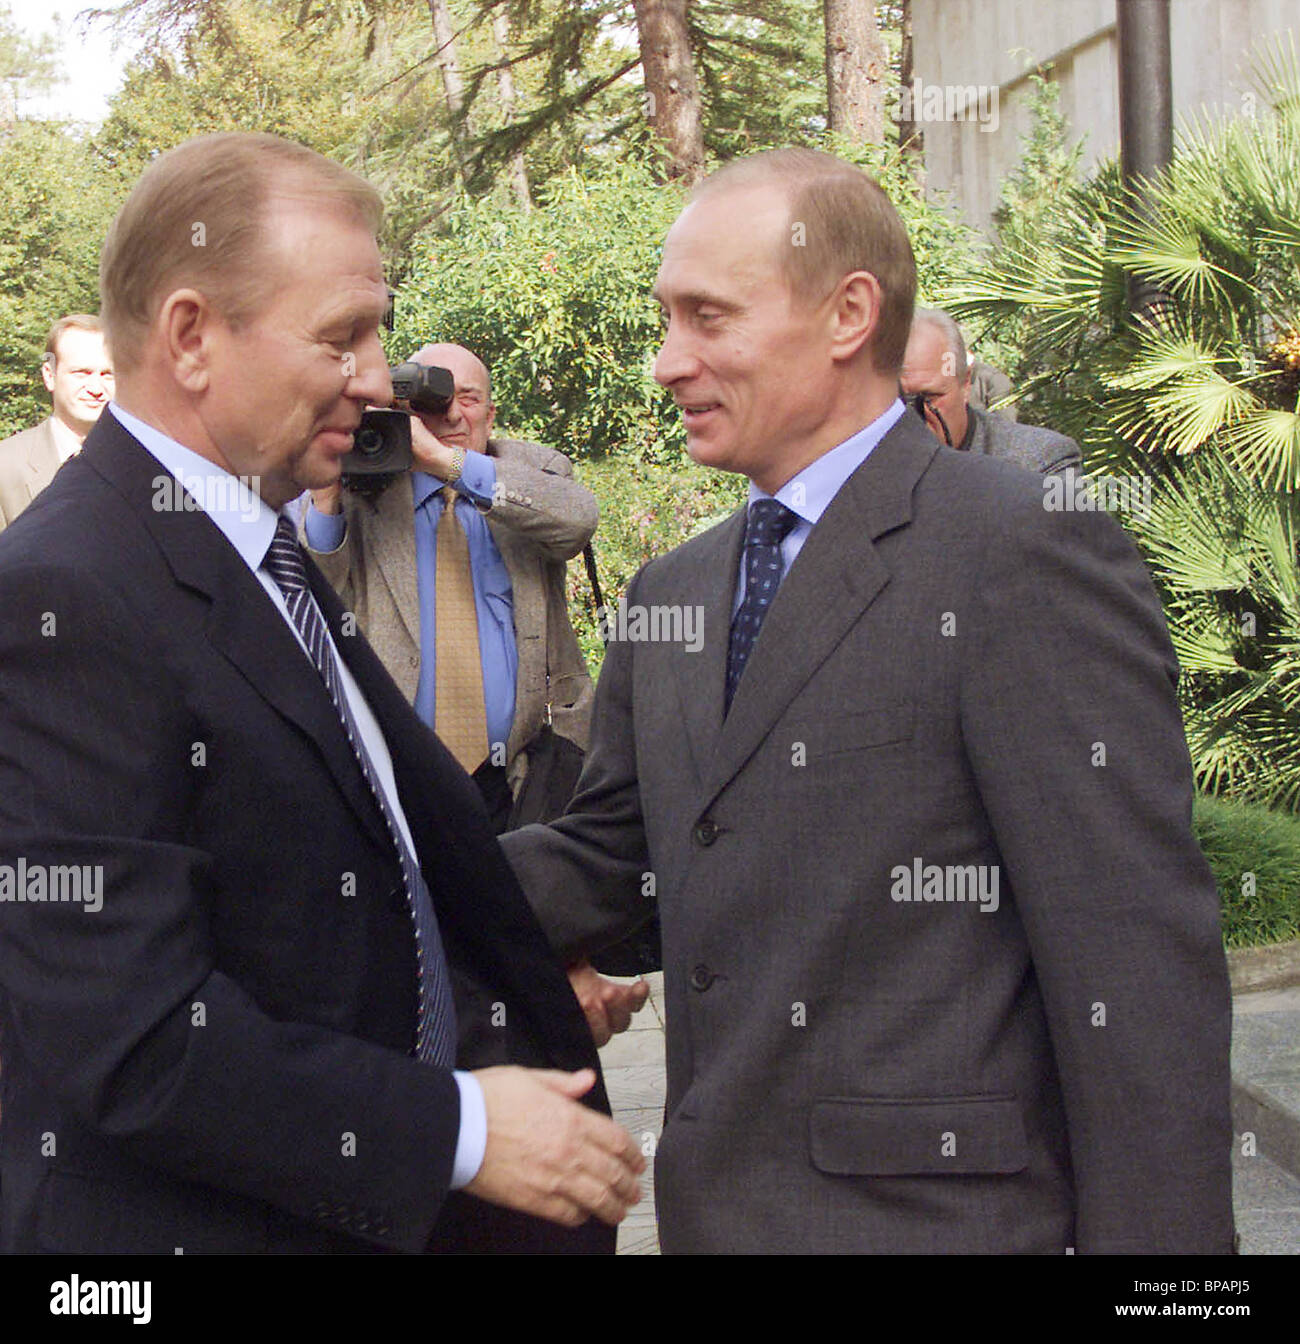 Russian President Vladimir Putin and his Ukrainian counterpart Leonid Kuchma seen speaking to journalists after - Stock Image